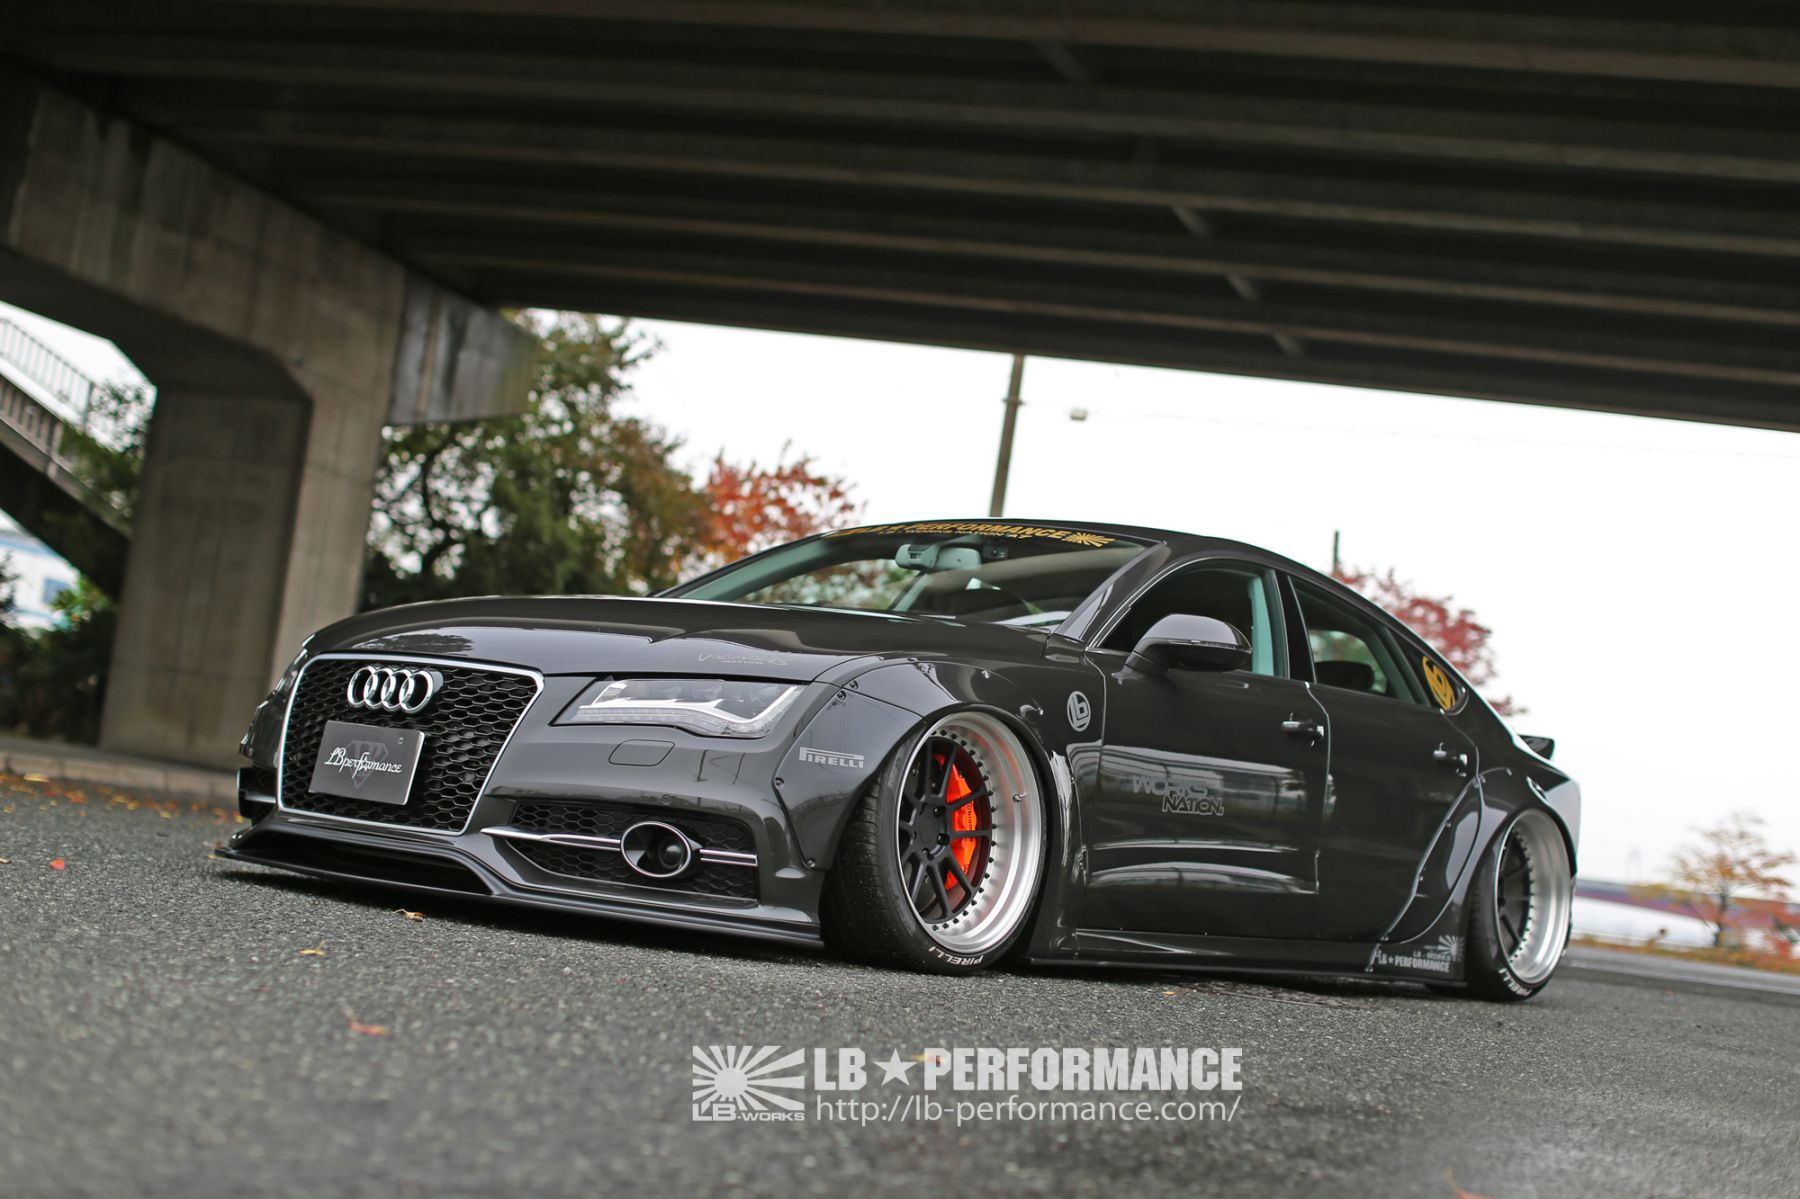 Lb Works Audi A7 S7 Liberty Walk リバティーウォーク